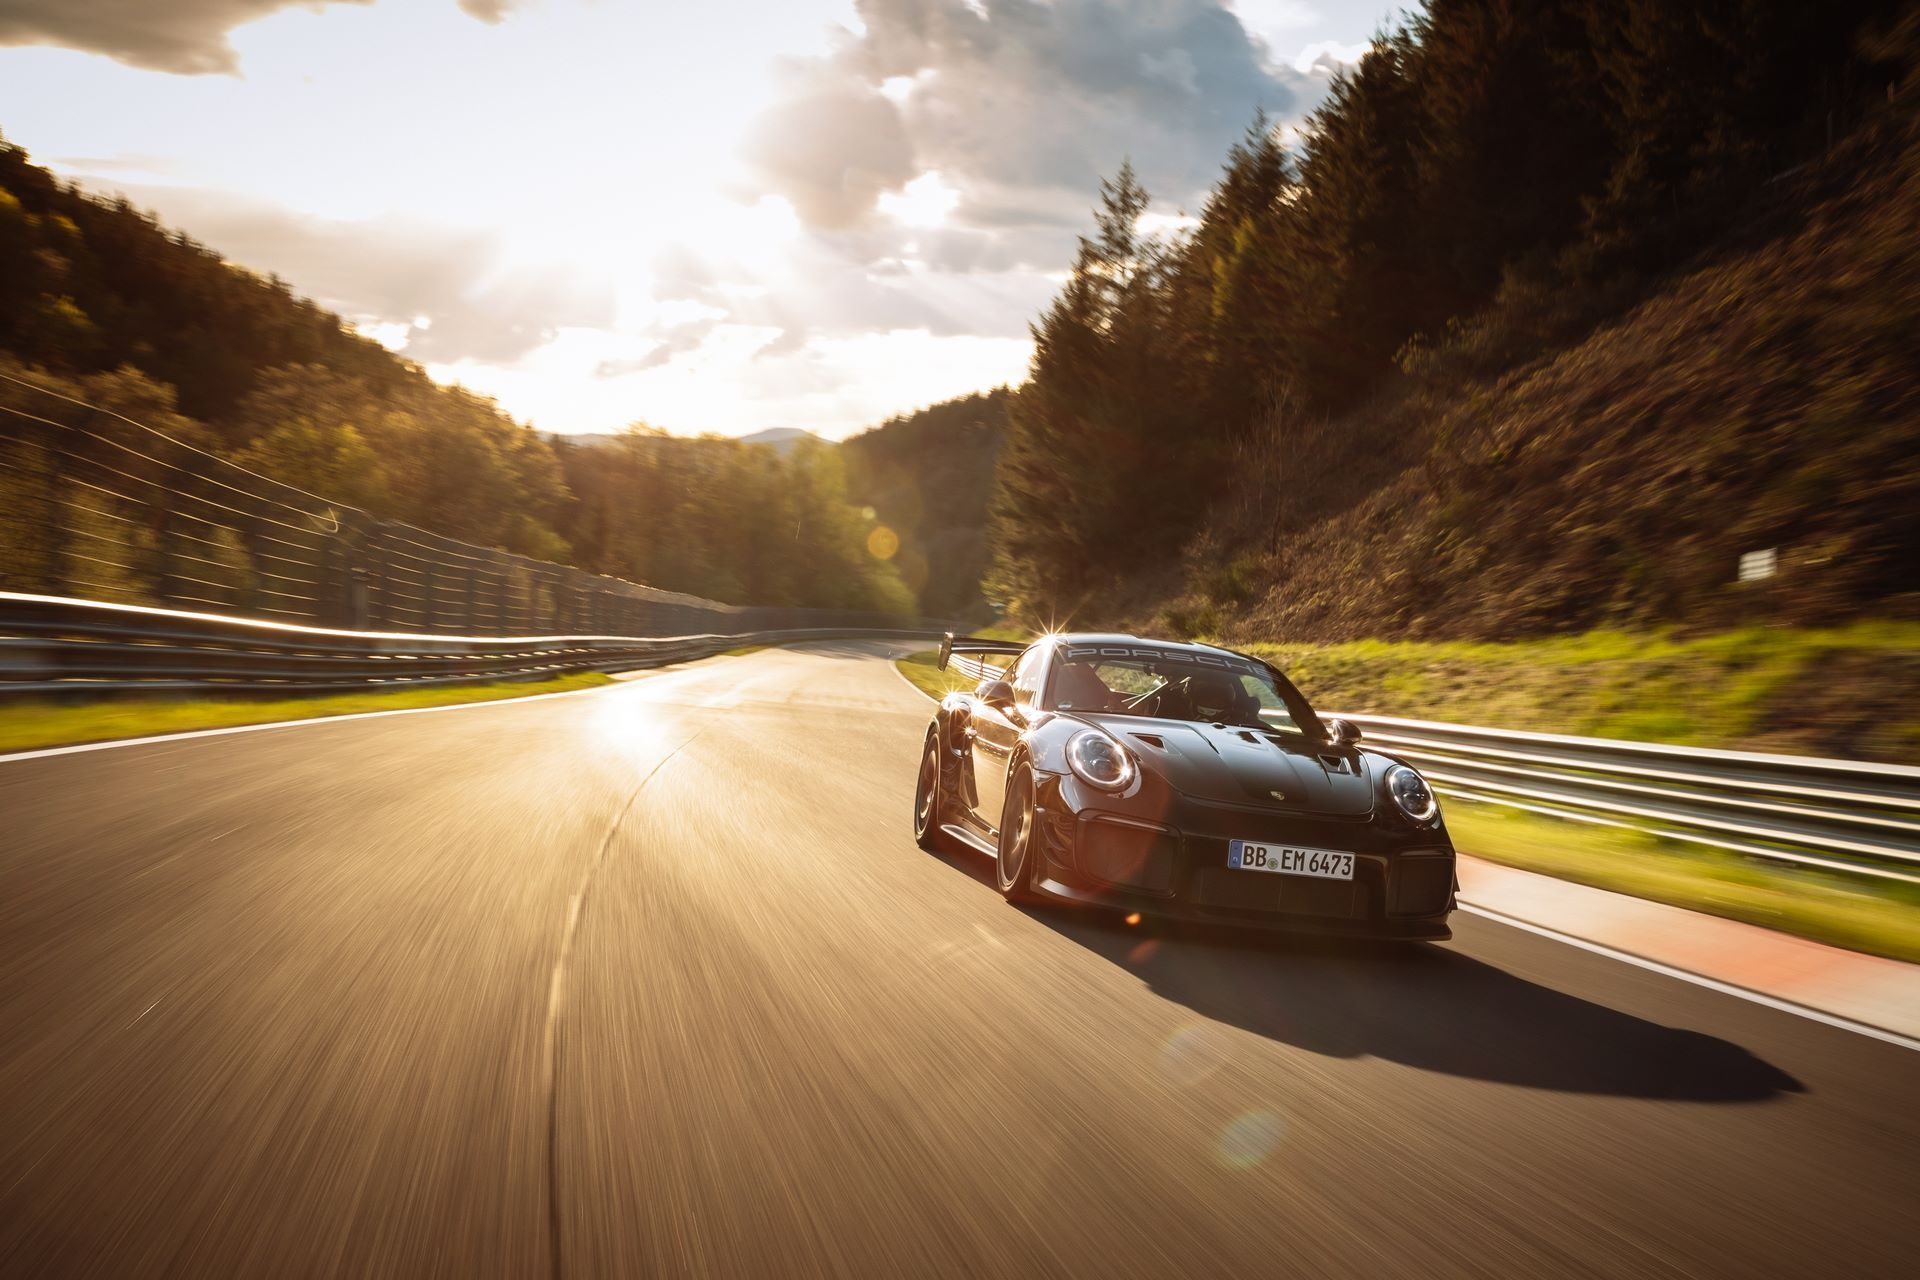 Porsche-911-GT2-RS-Manthey-Performance-Kit-Nurburgring-Record-3